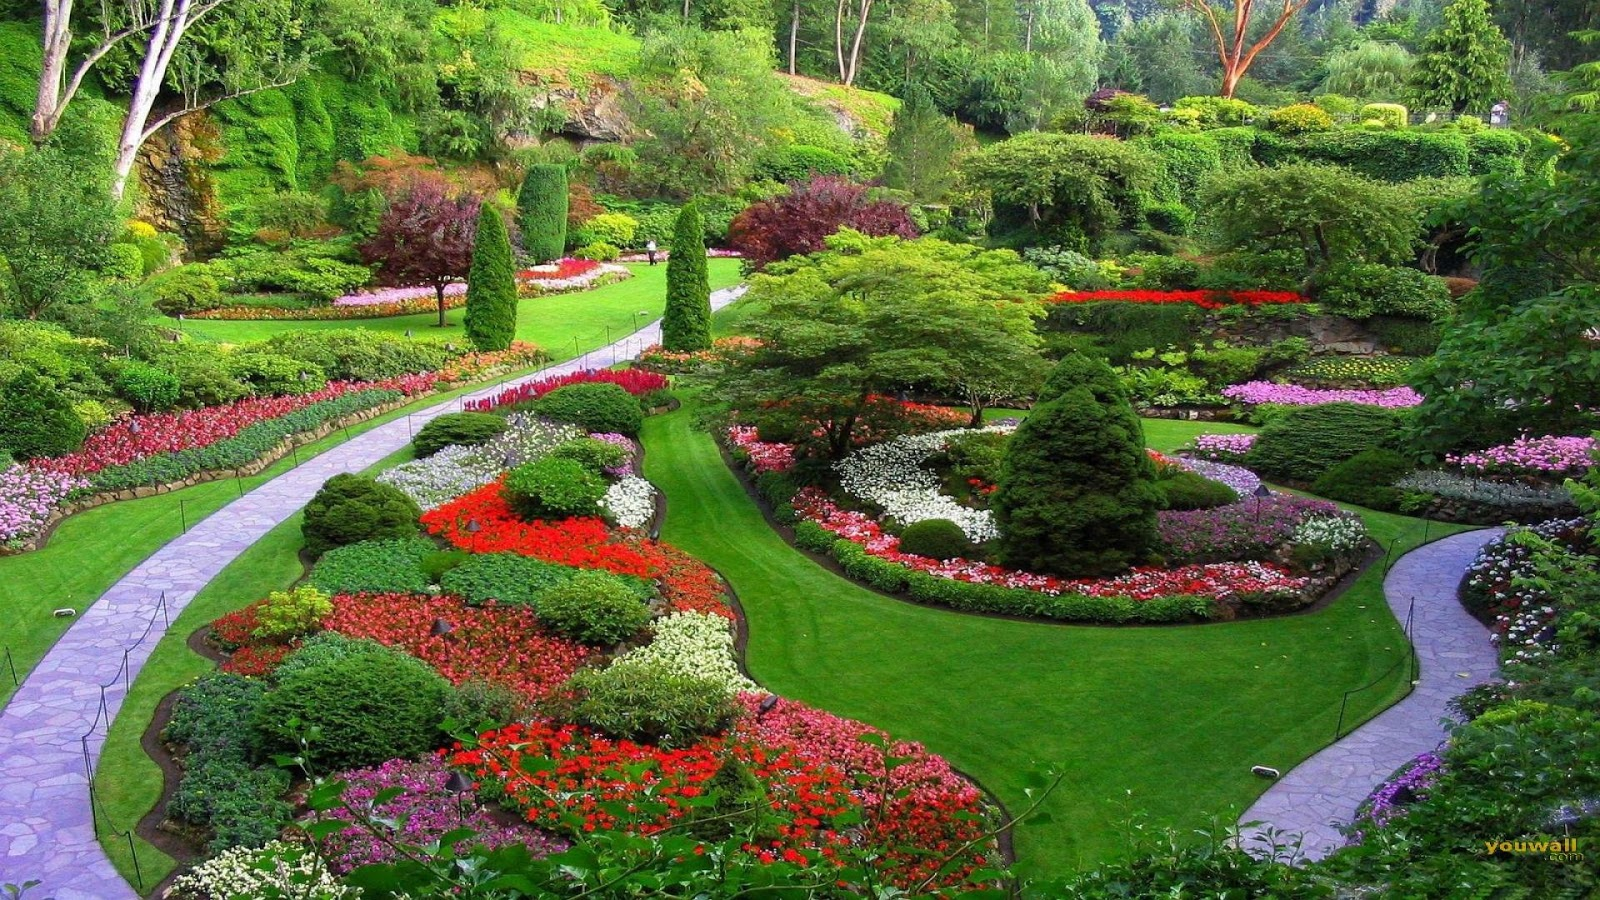 gardens hd wallpapers check out the cool latest gardens images high 1600x900